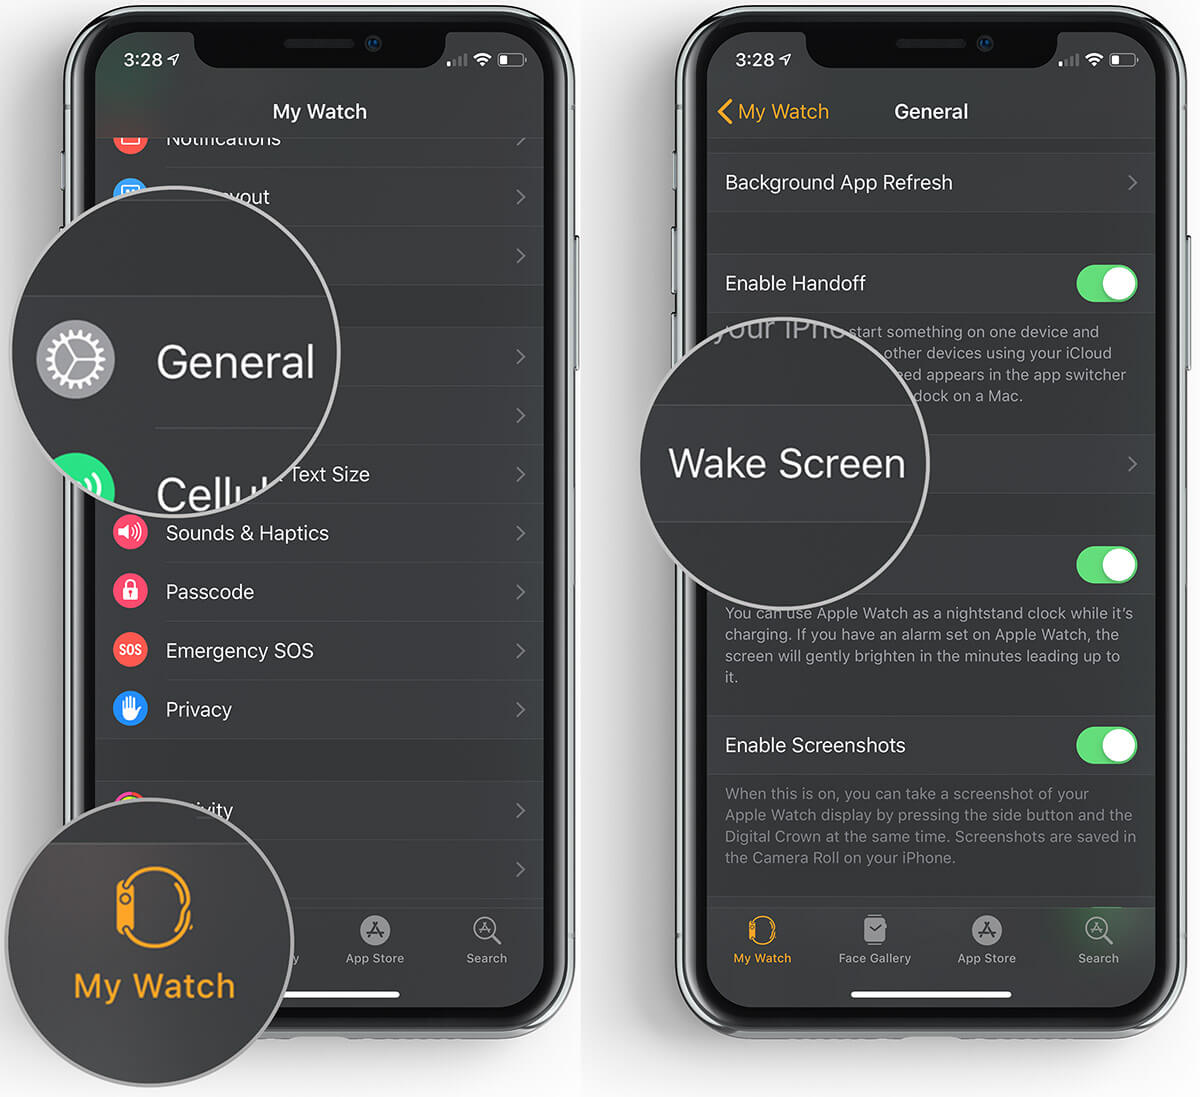 Tap on General then Wake Screen in Apple Watch App on iPhone